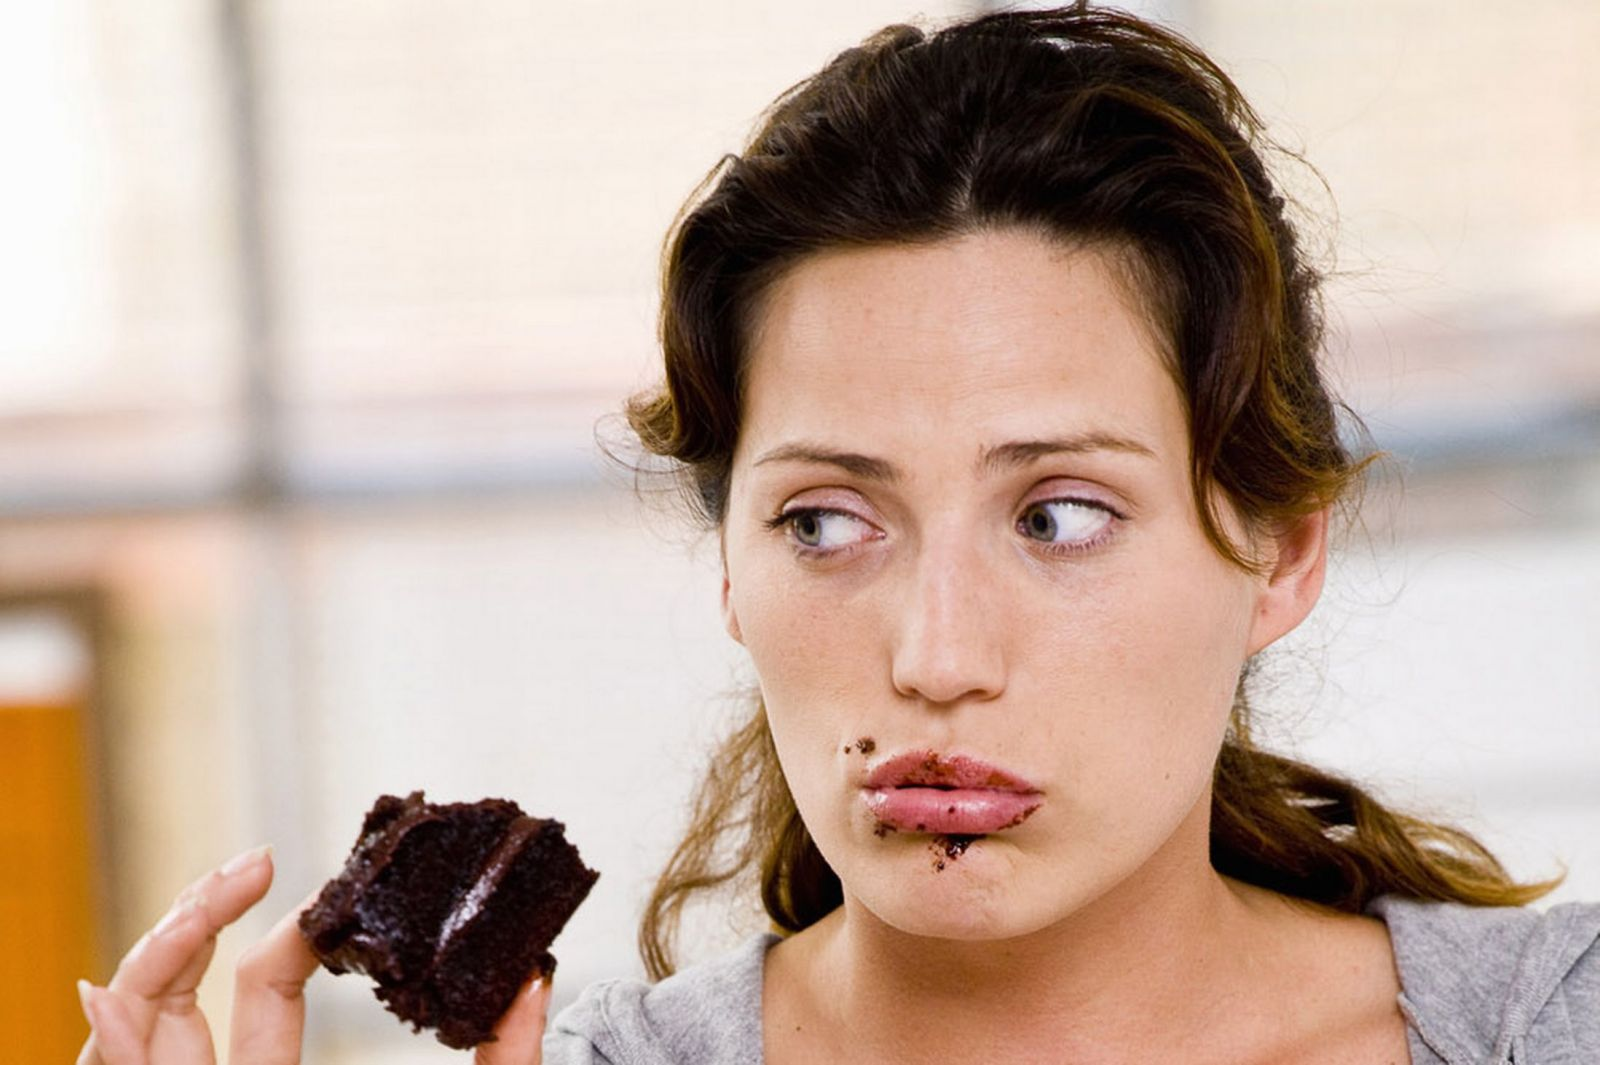 Do You Have Strong Food Cravings? Here's Why!